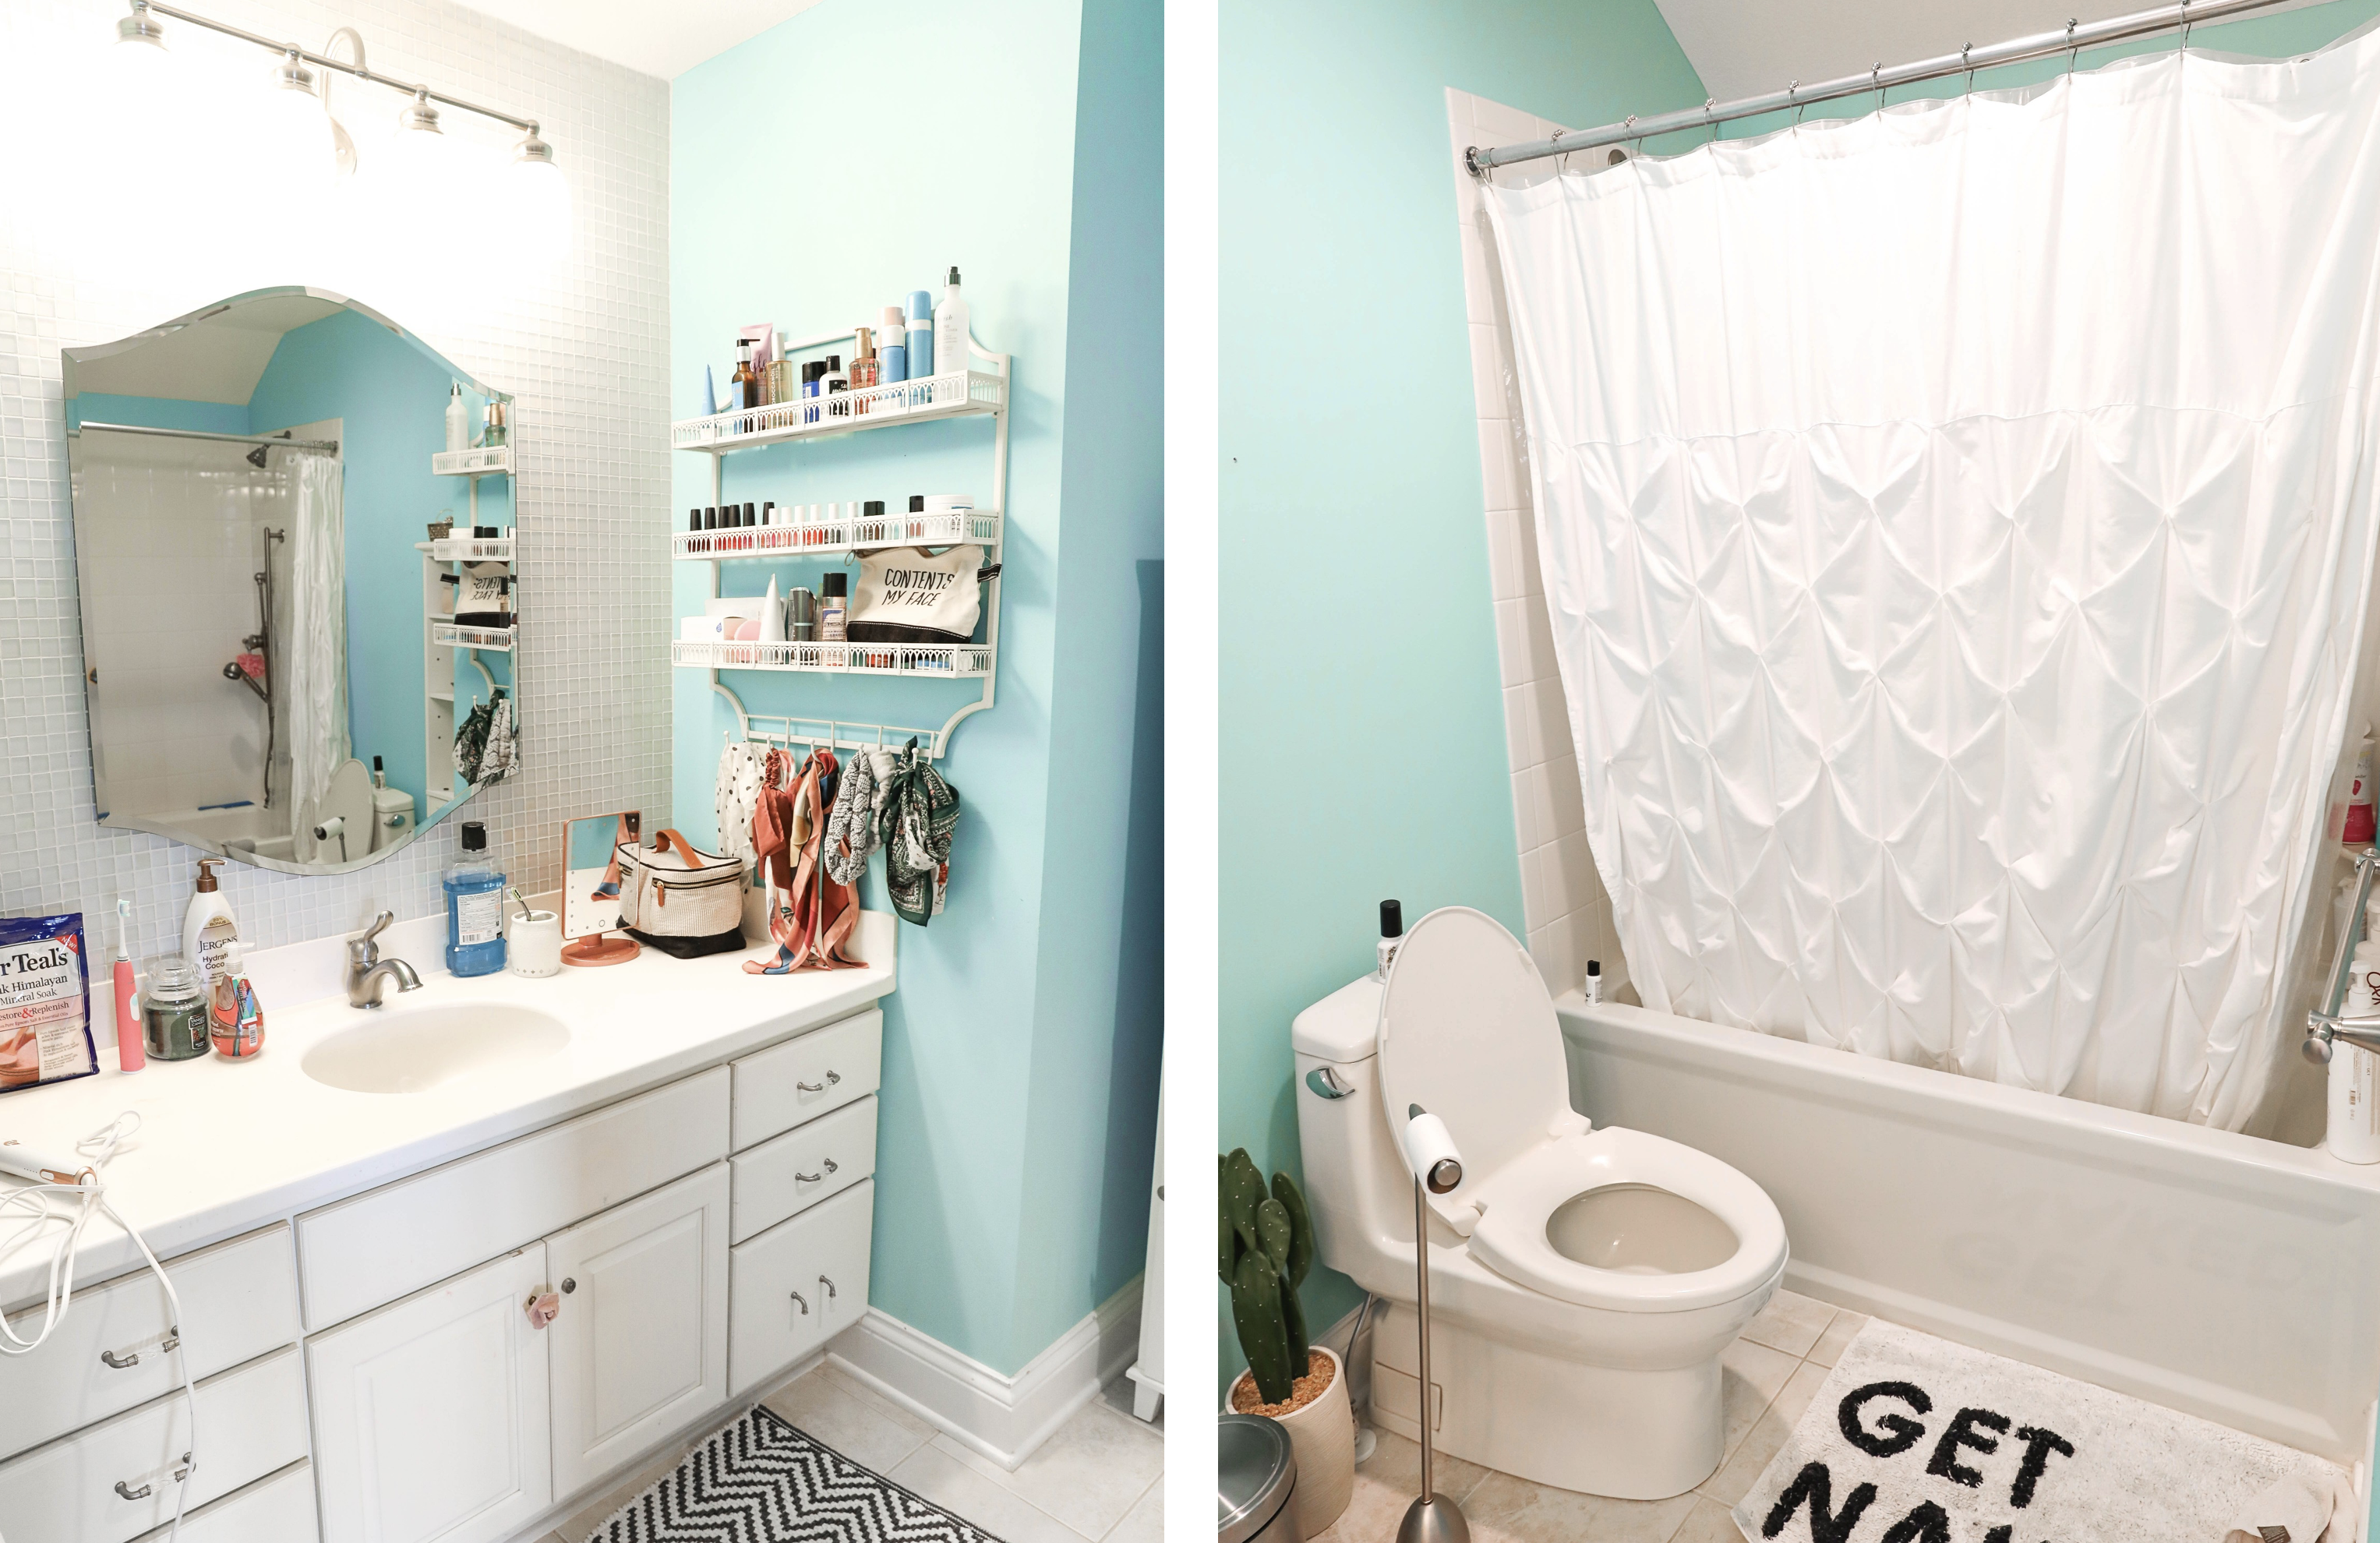 Bathroom transformation! The before photo of this bathroom are horrible, such an ugly blue color! I switched it up with some cute black and white Dalmatian wallpaper! This wallpaper is completely temporary and removable which makes it great for renting! Such a cute interior design post! Cutest black and white bathroom! Details on lifestyle and fashion blog daily dose of charm by lauren lindmark